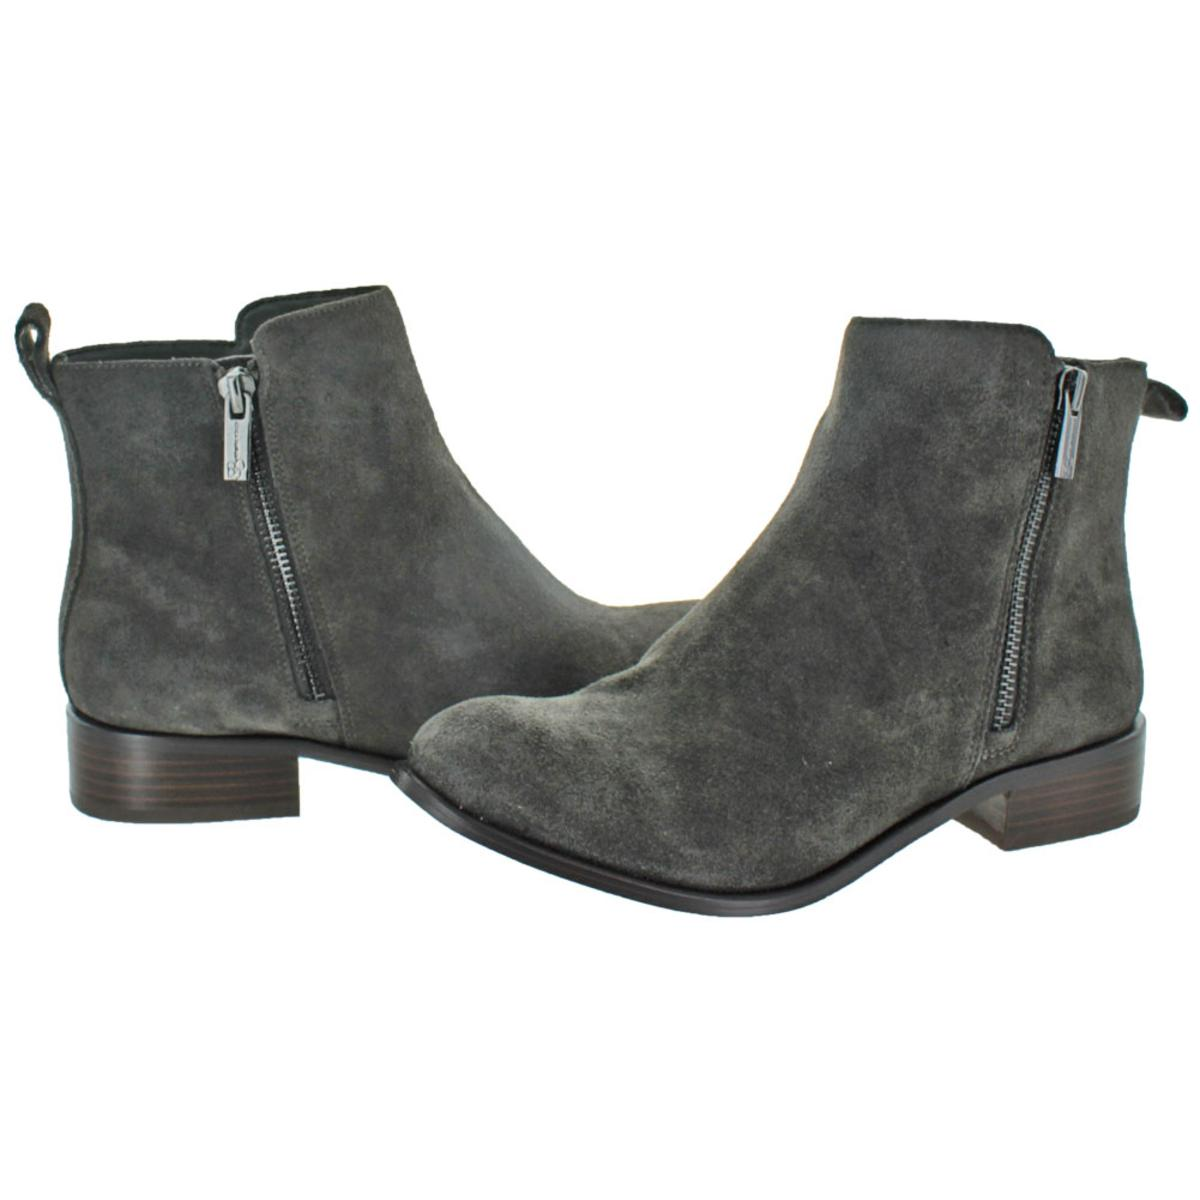 Jessica-Simpson-Kesaria-Ankle-Casual-Suede-Booties-Boots thumbnail 5